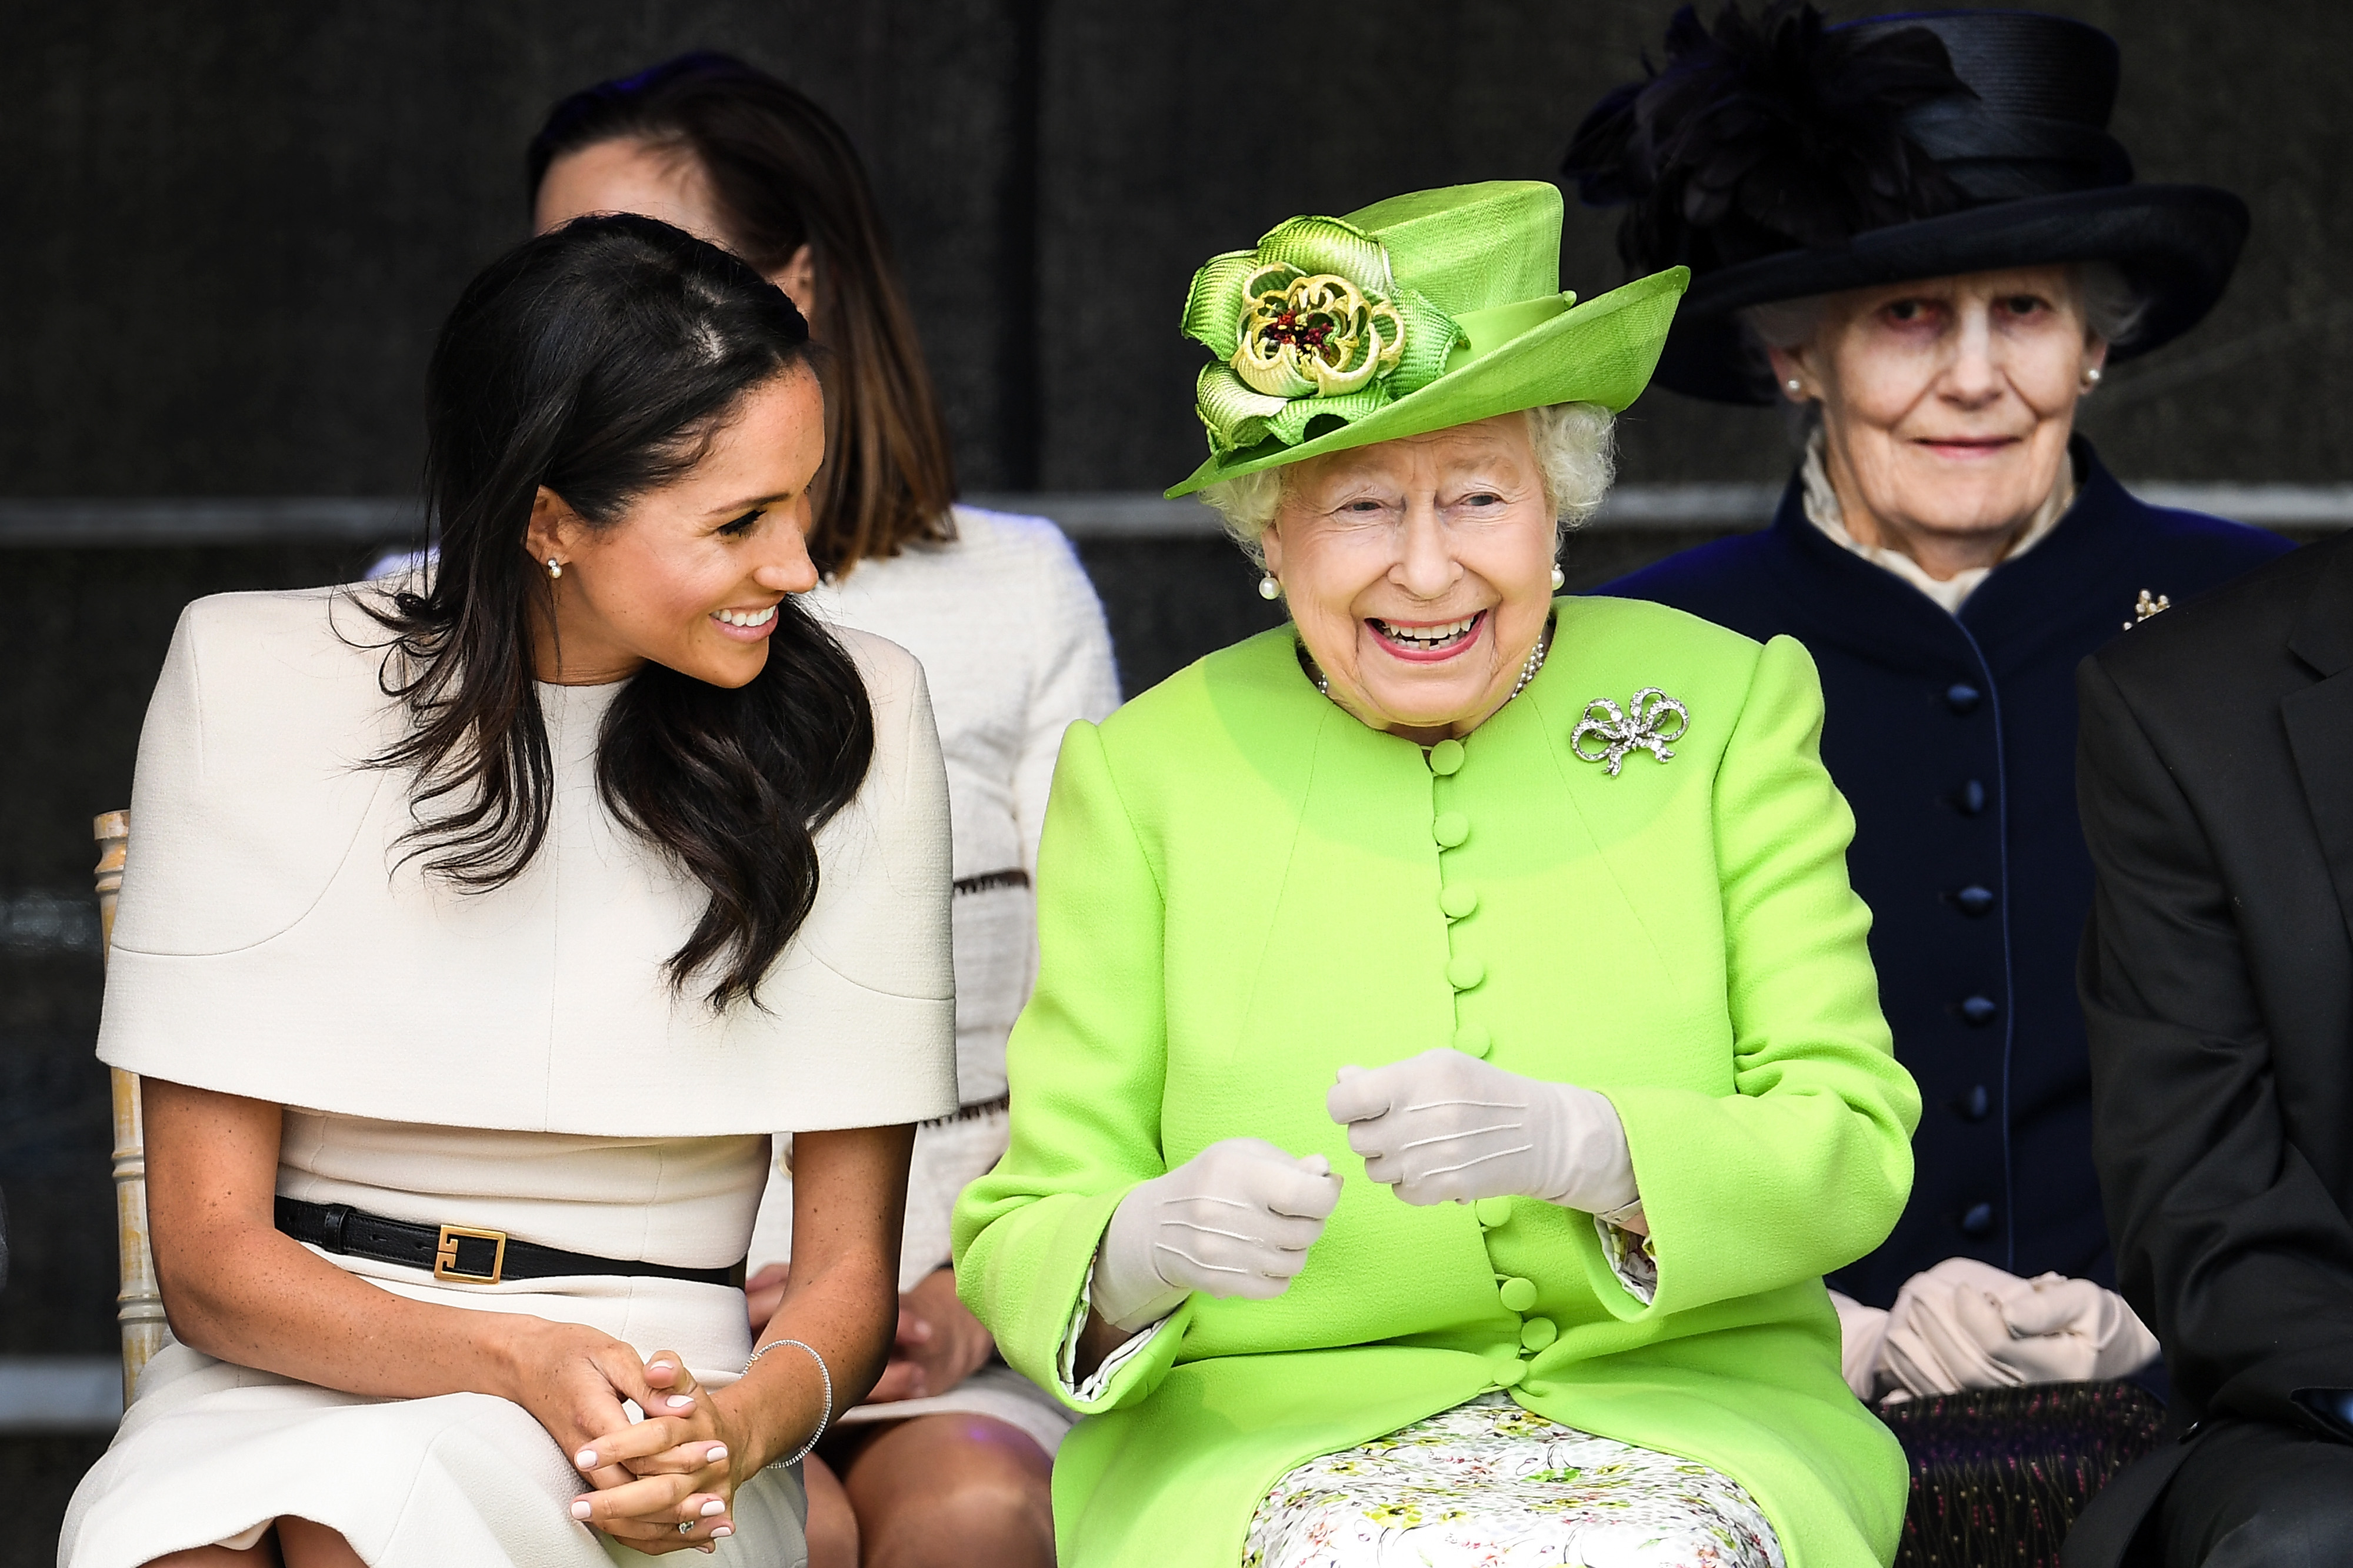 Meghan-Markle-Shares-Several-Laughs-With-Queen-Elizabeth-II-In-First-Solo-Appearance-Together